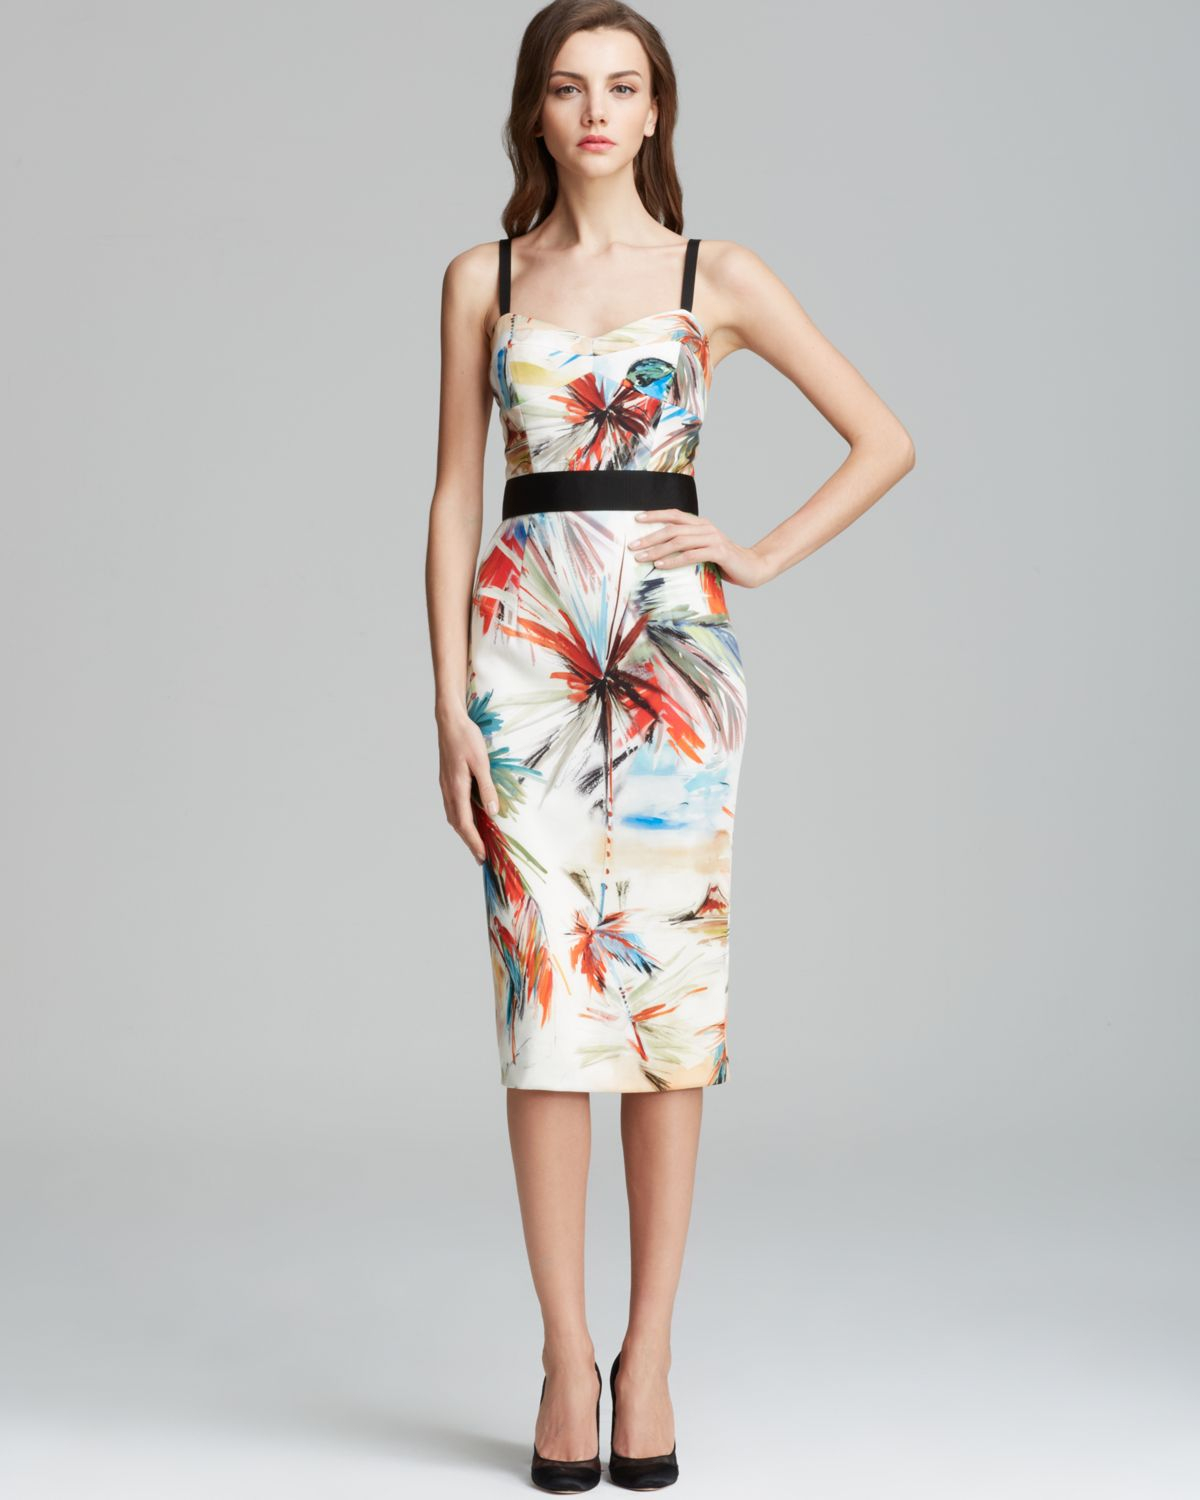 Lyst Milly Dress Parrot Print Bustier Strap